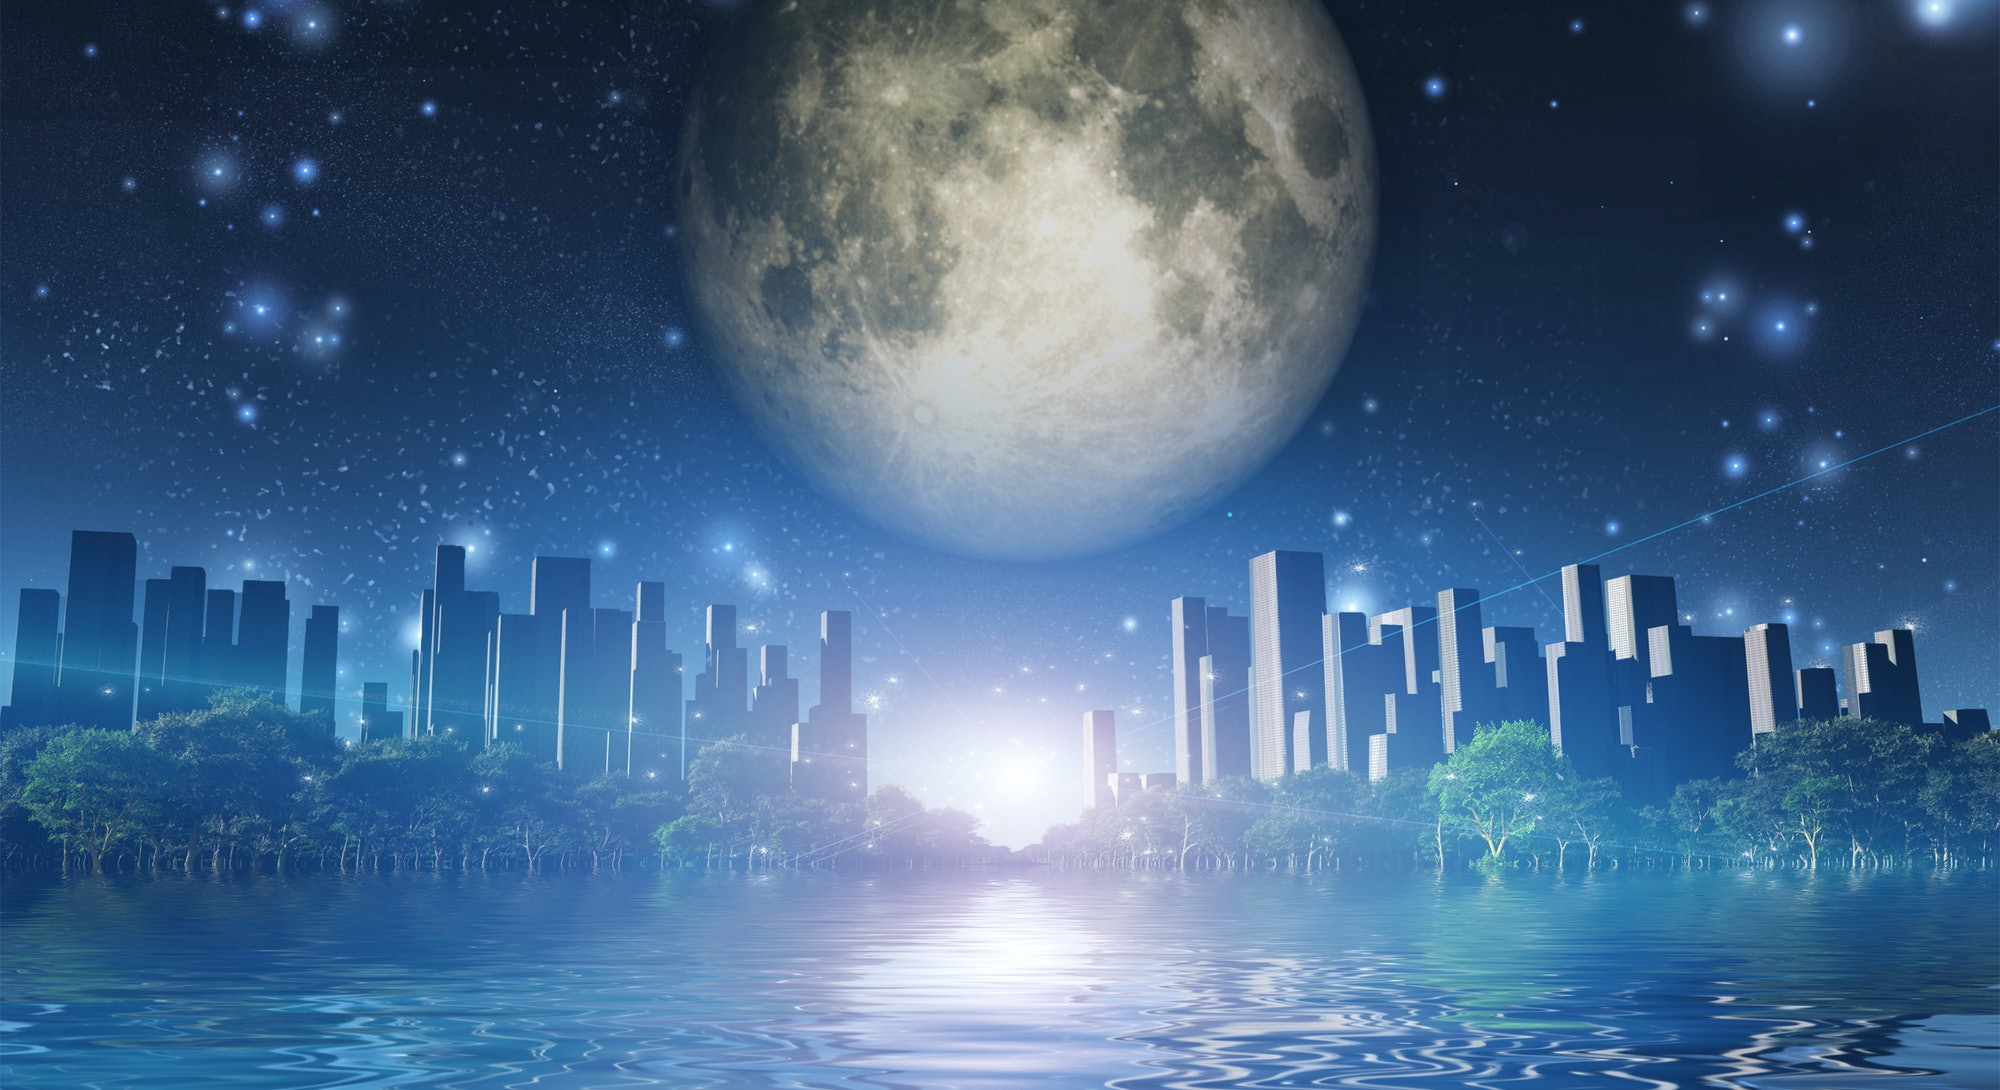 Surreal digital art. City surrounded by green trees in water world. Giant moon in the sky. 3D rendering